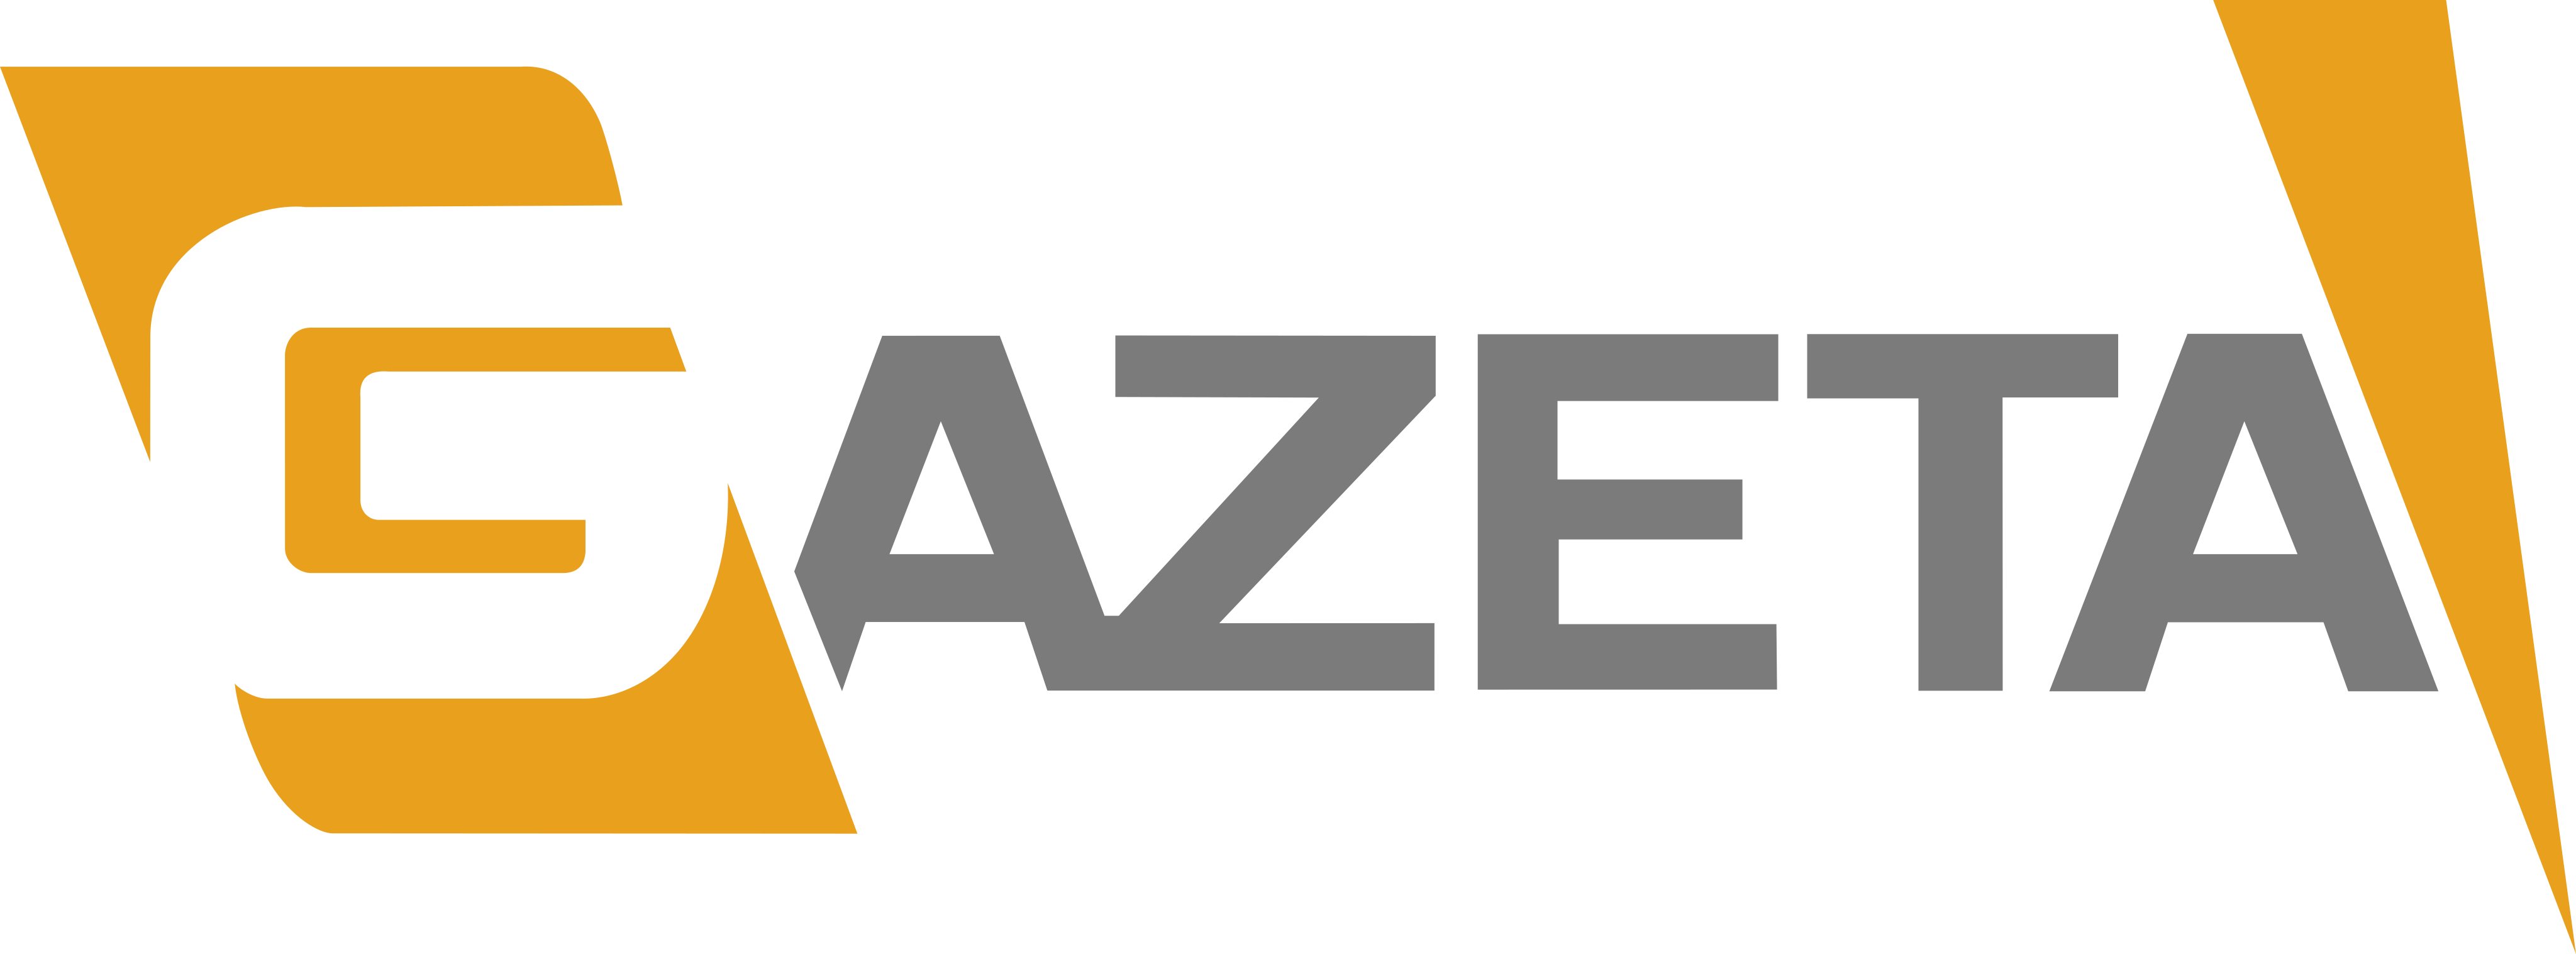 tv gazeta logo - TV Gazeta Logo